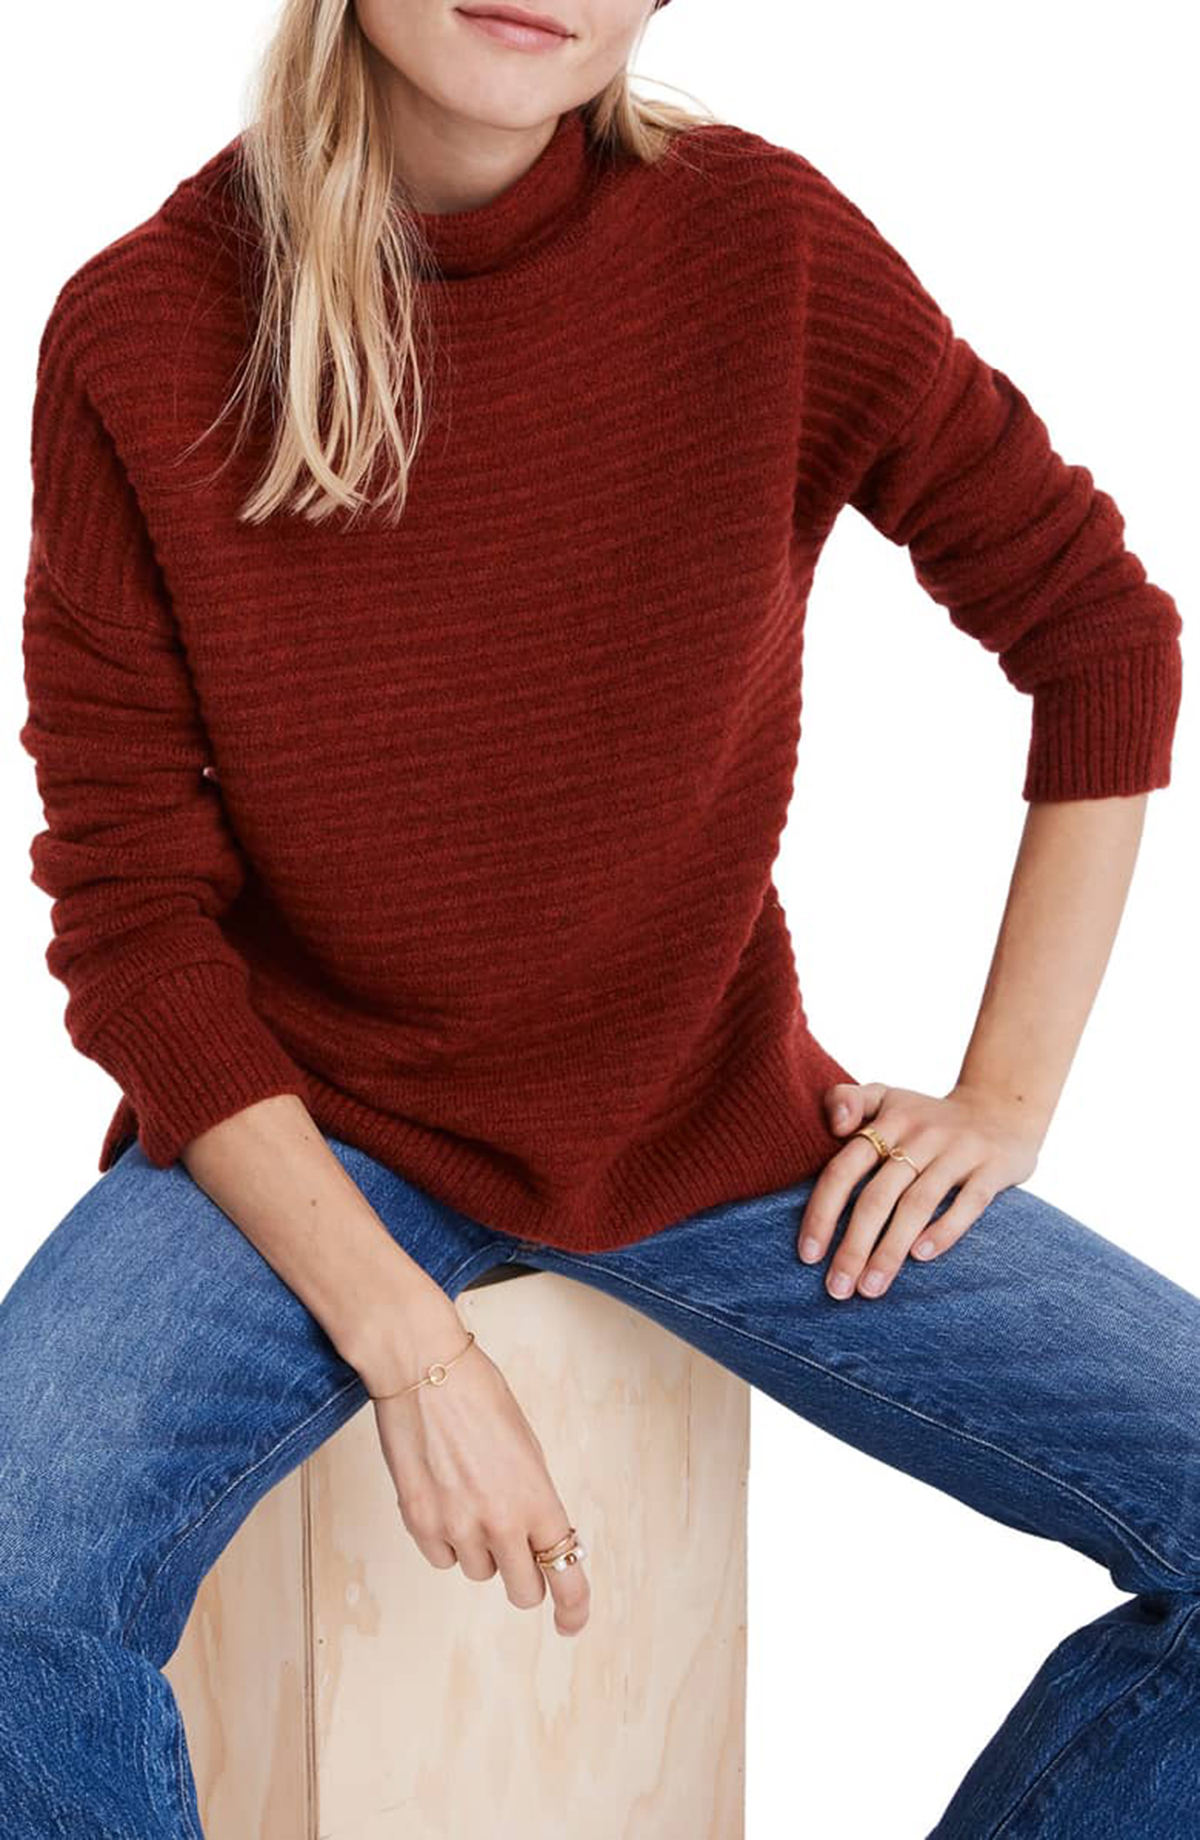 Madewell Belmont Sweater Red